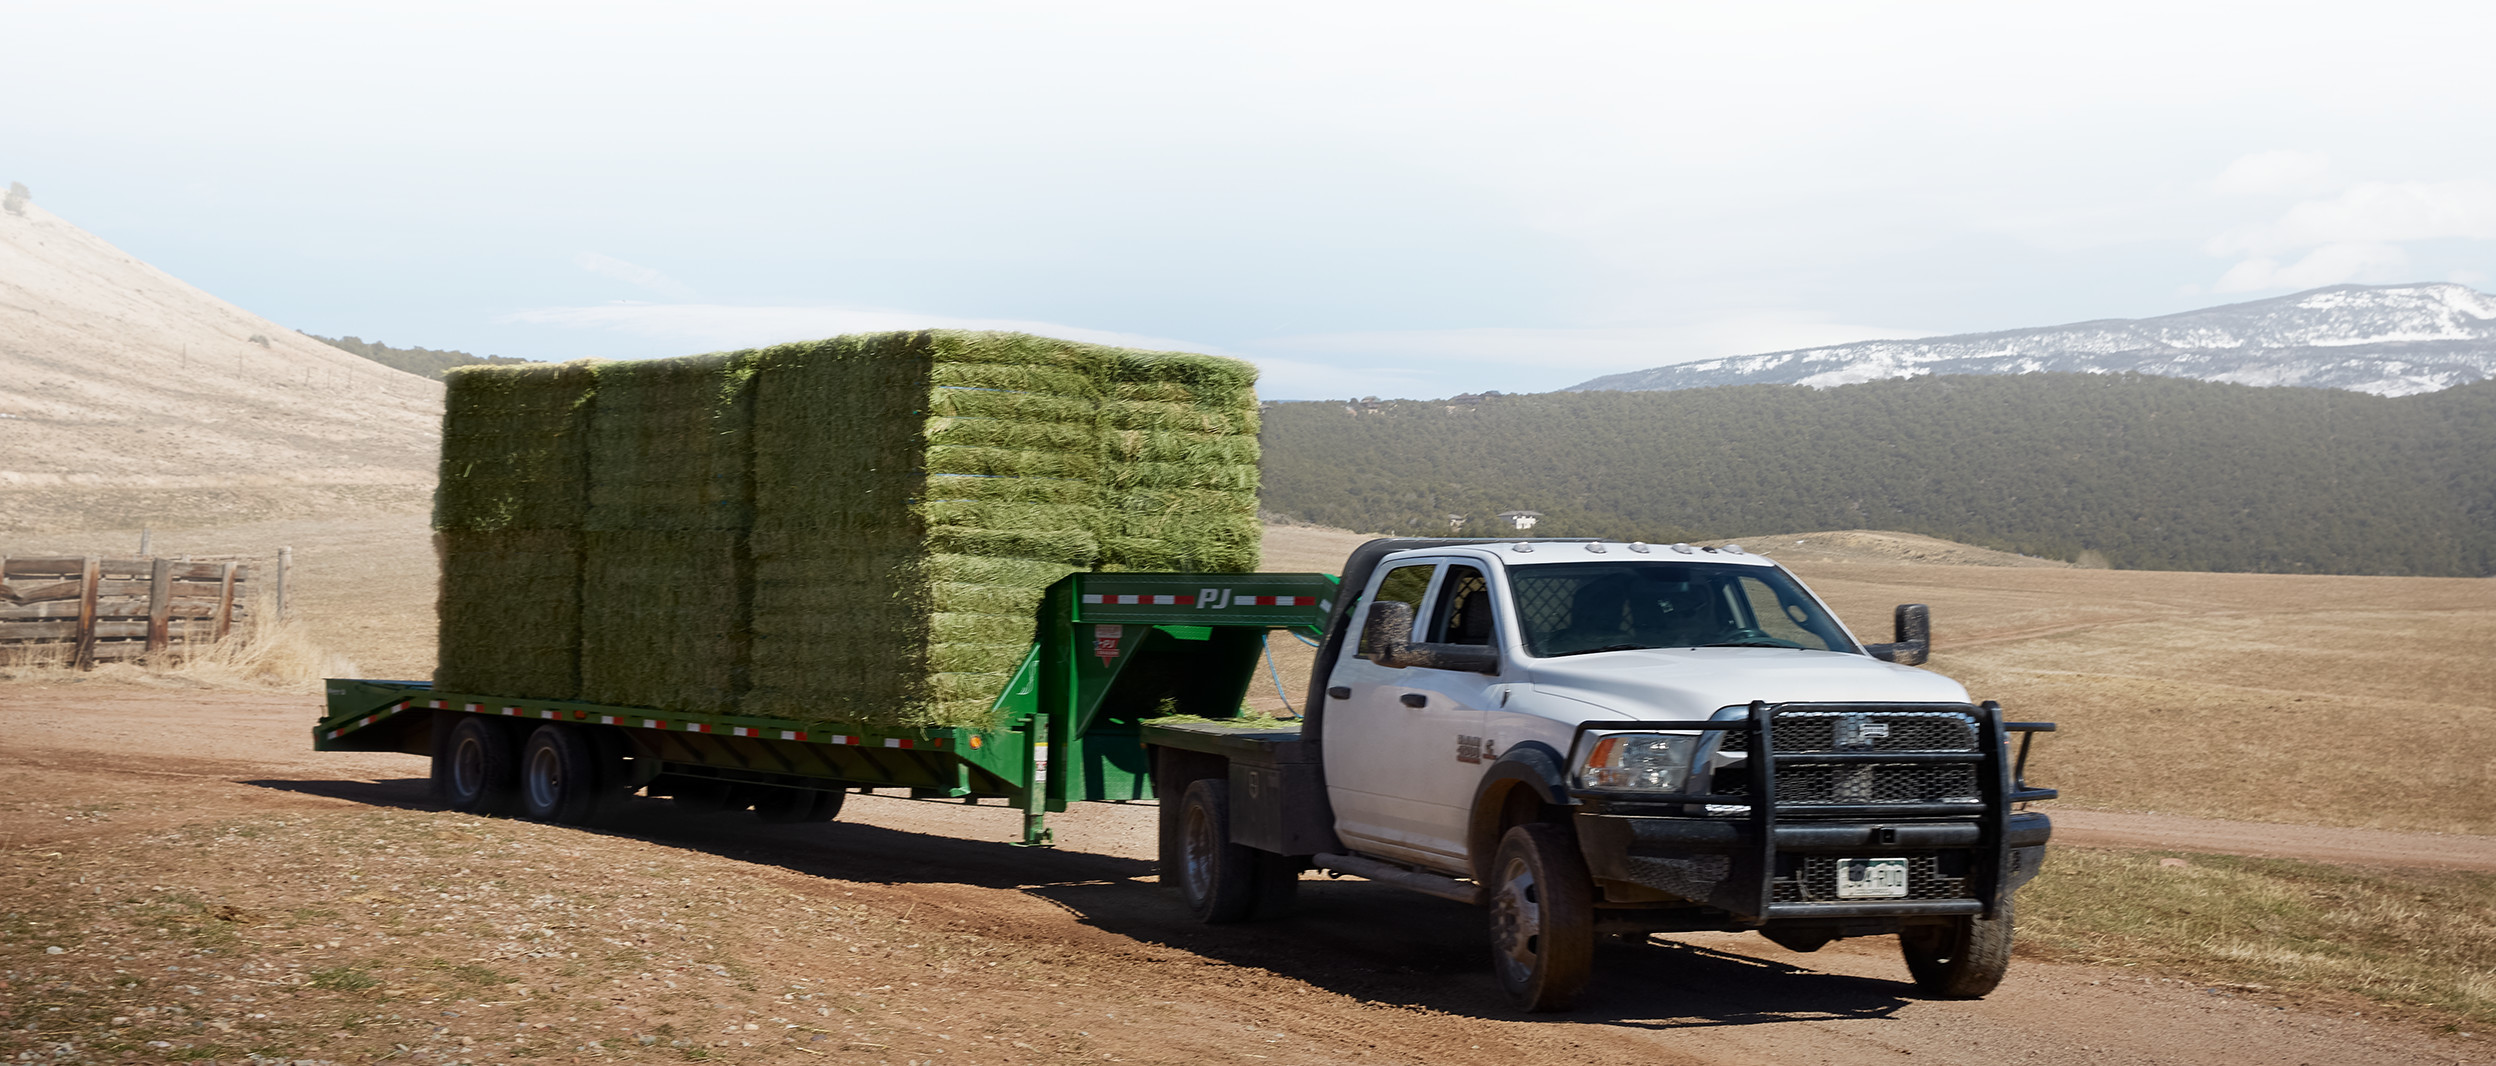 2018 RAM Chassis Cab side view towing hay